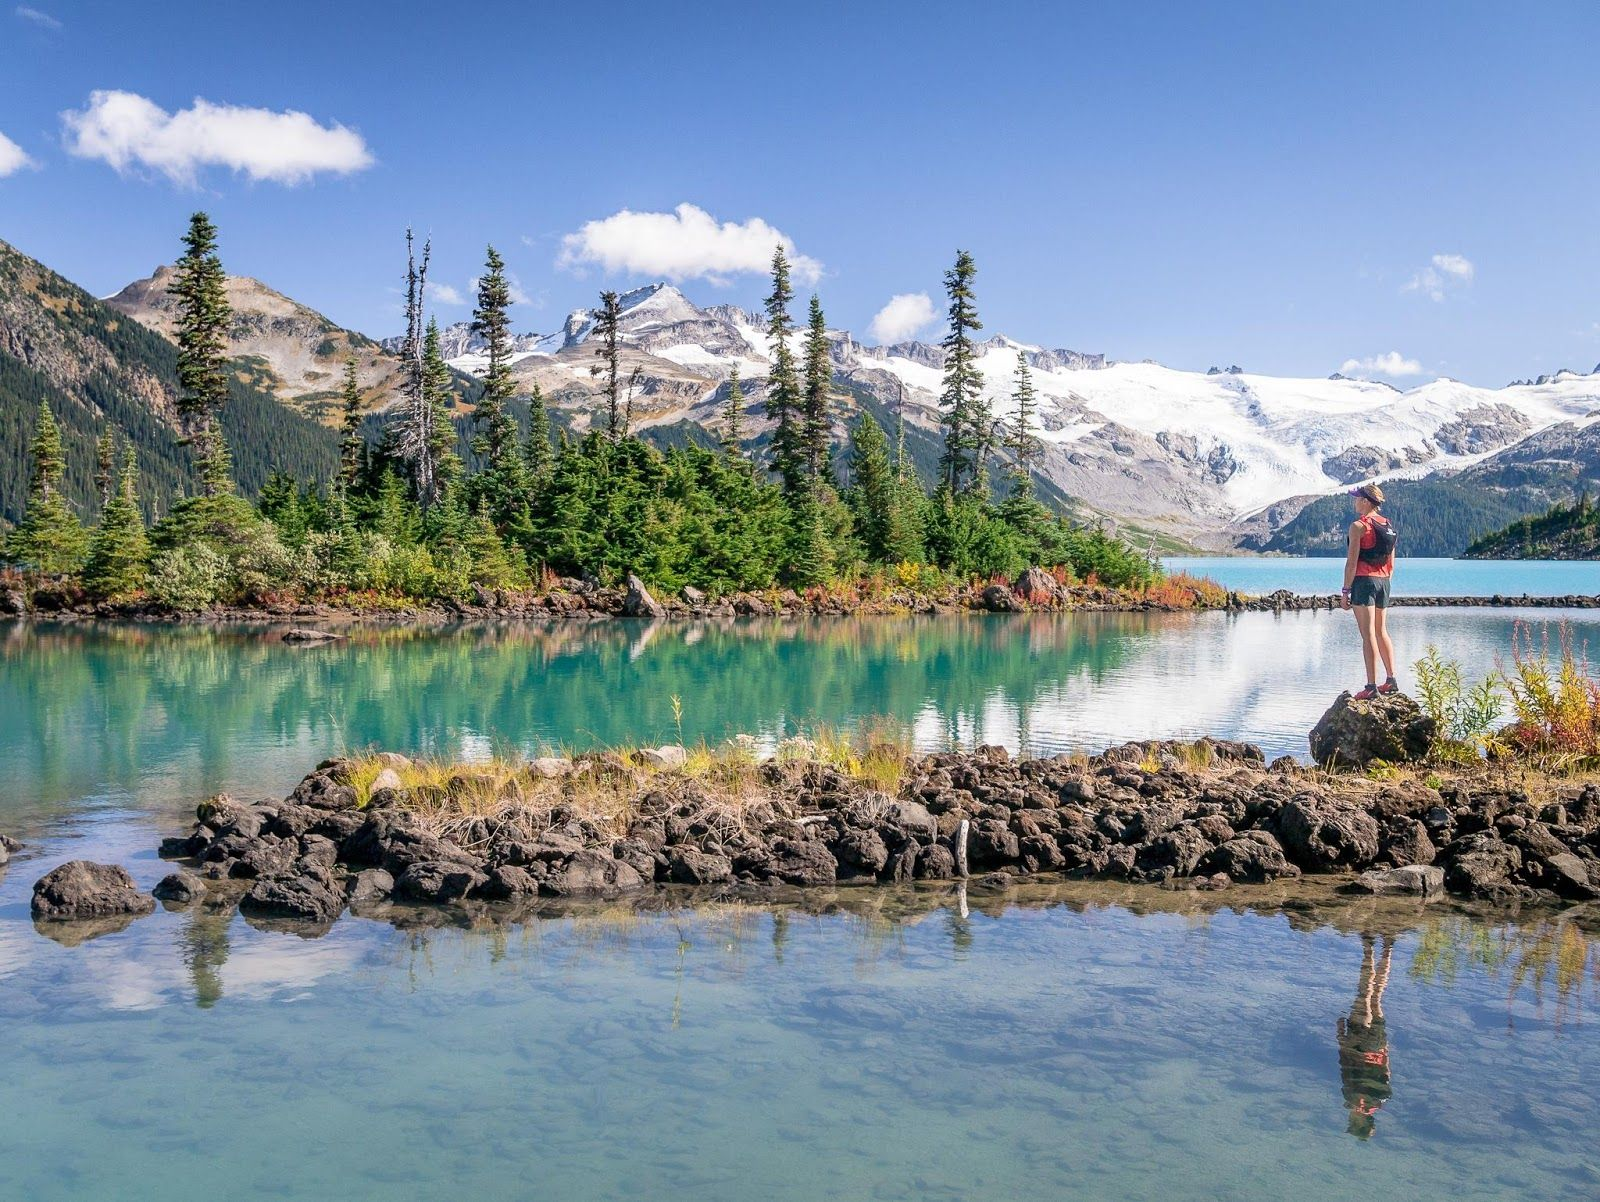 """Every time I step foot on the trails leading into Garibaldi Provincial Park my breath is taken away."" See more of this and other places that catch our breath. http://buff.ly/1Kq8OcC"